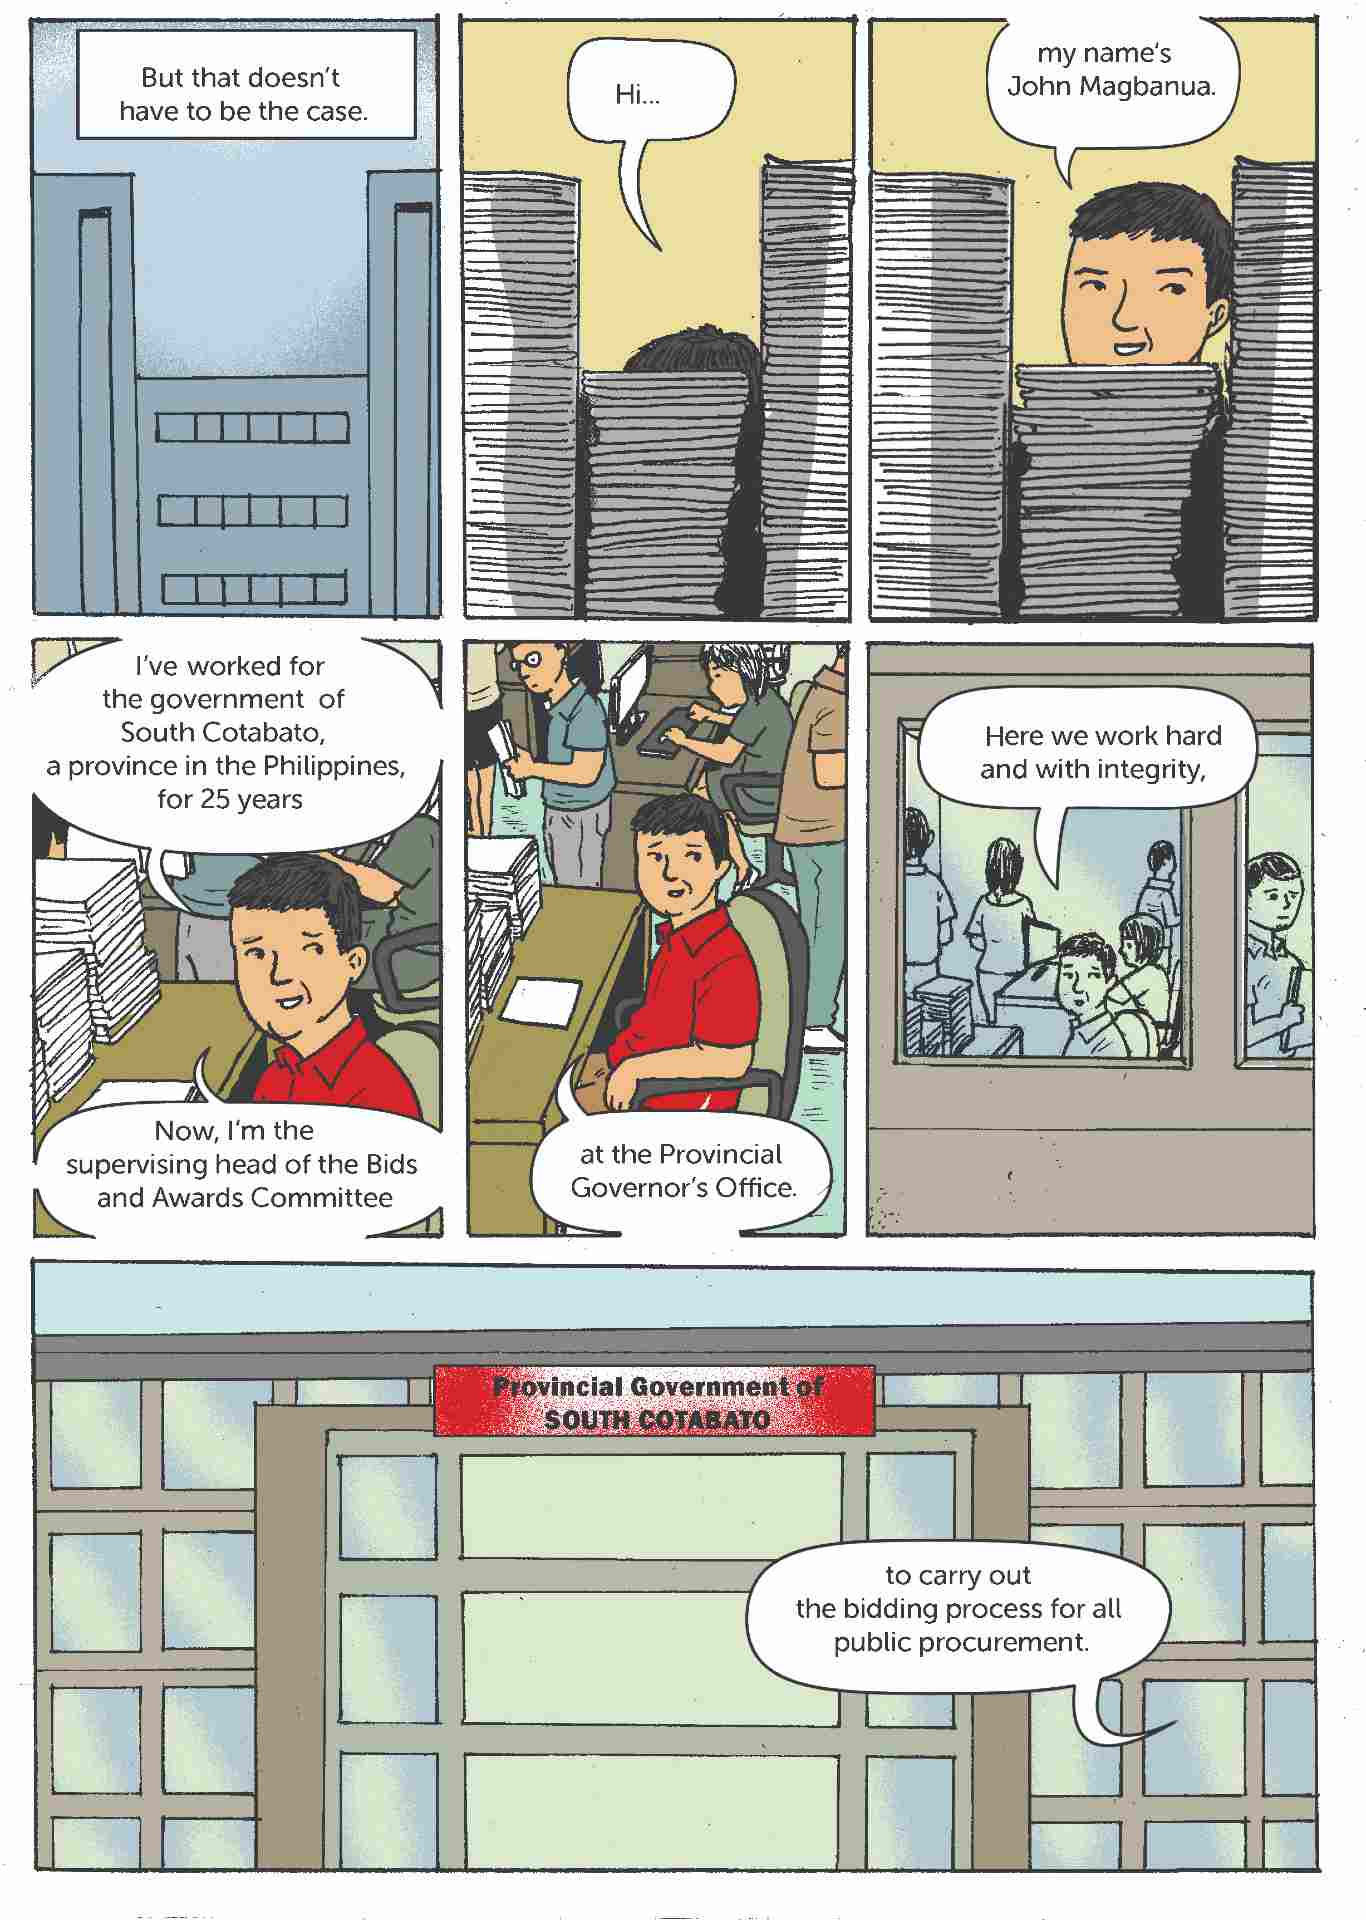 Comic strip about open contracting in the Philippines 2